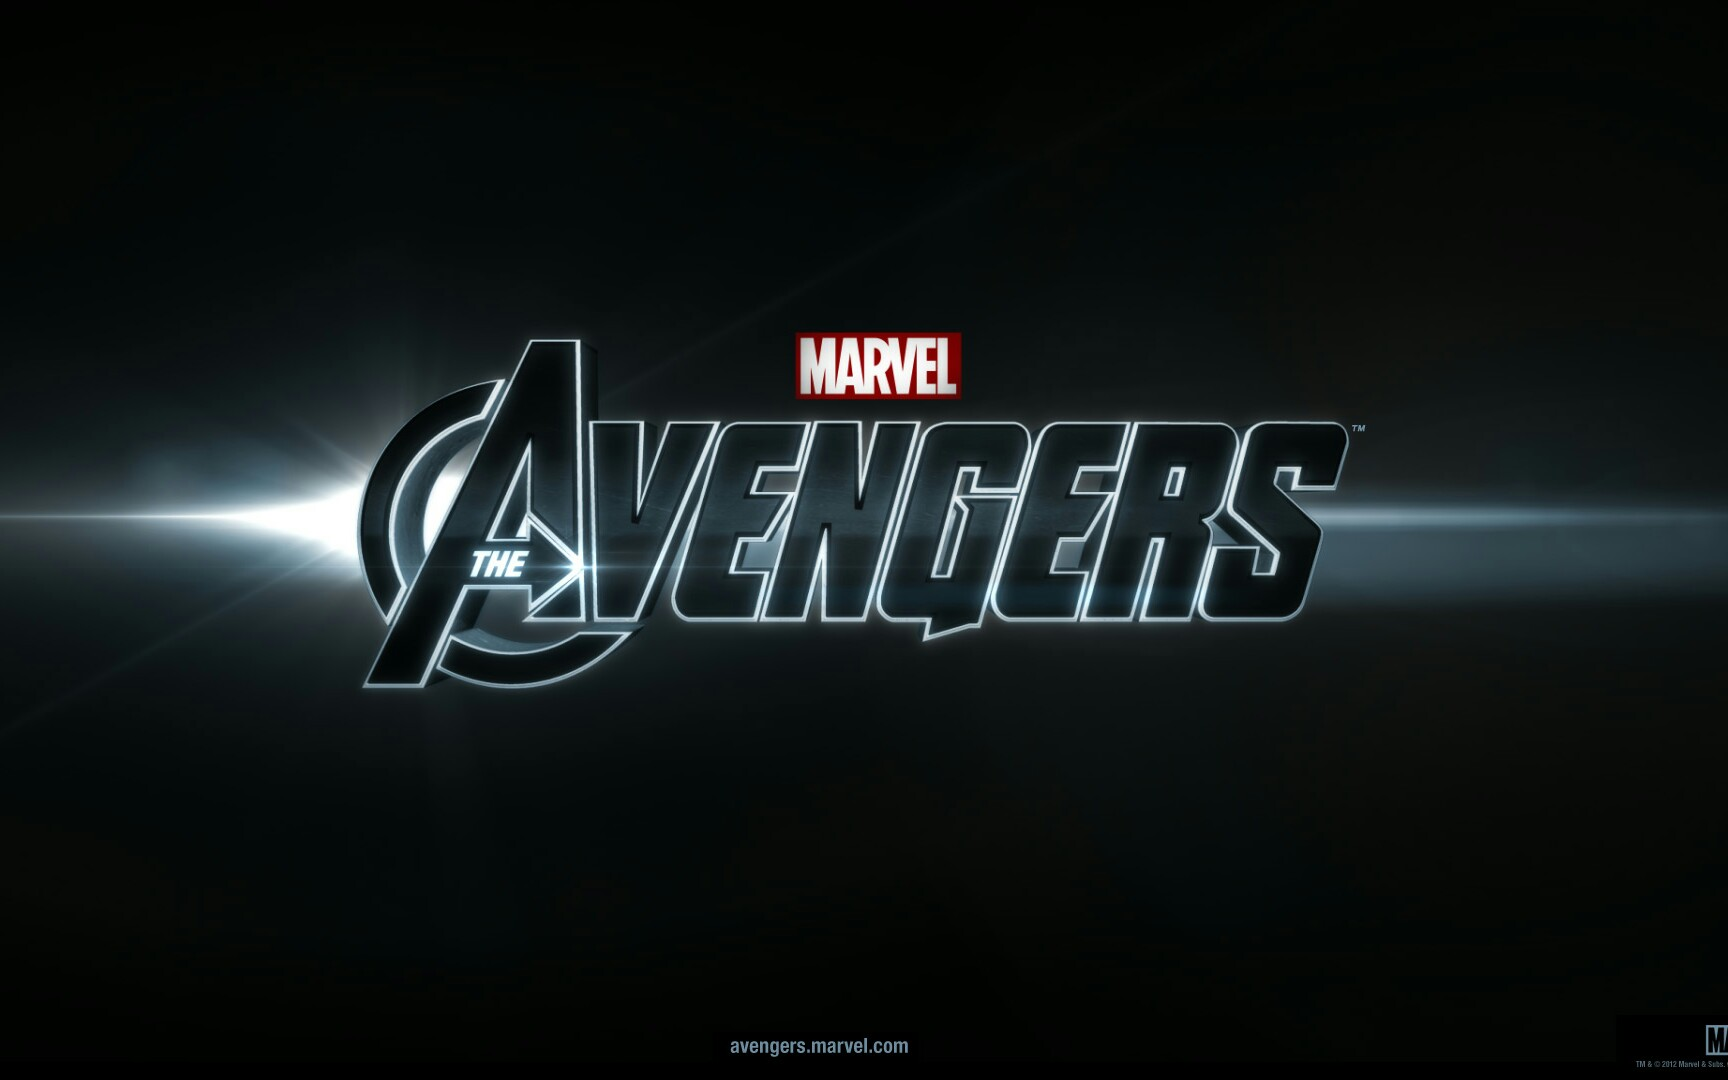 3 avengers movies to watch before endgame